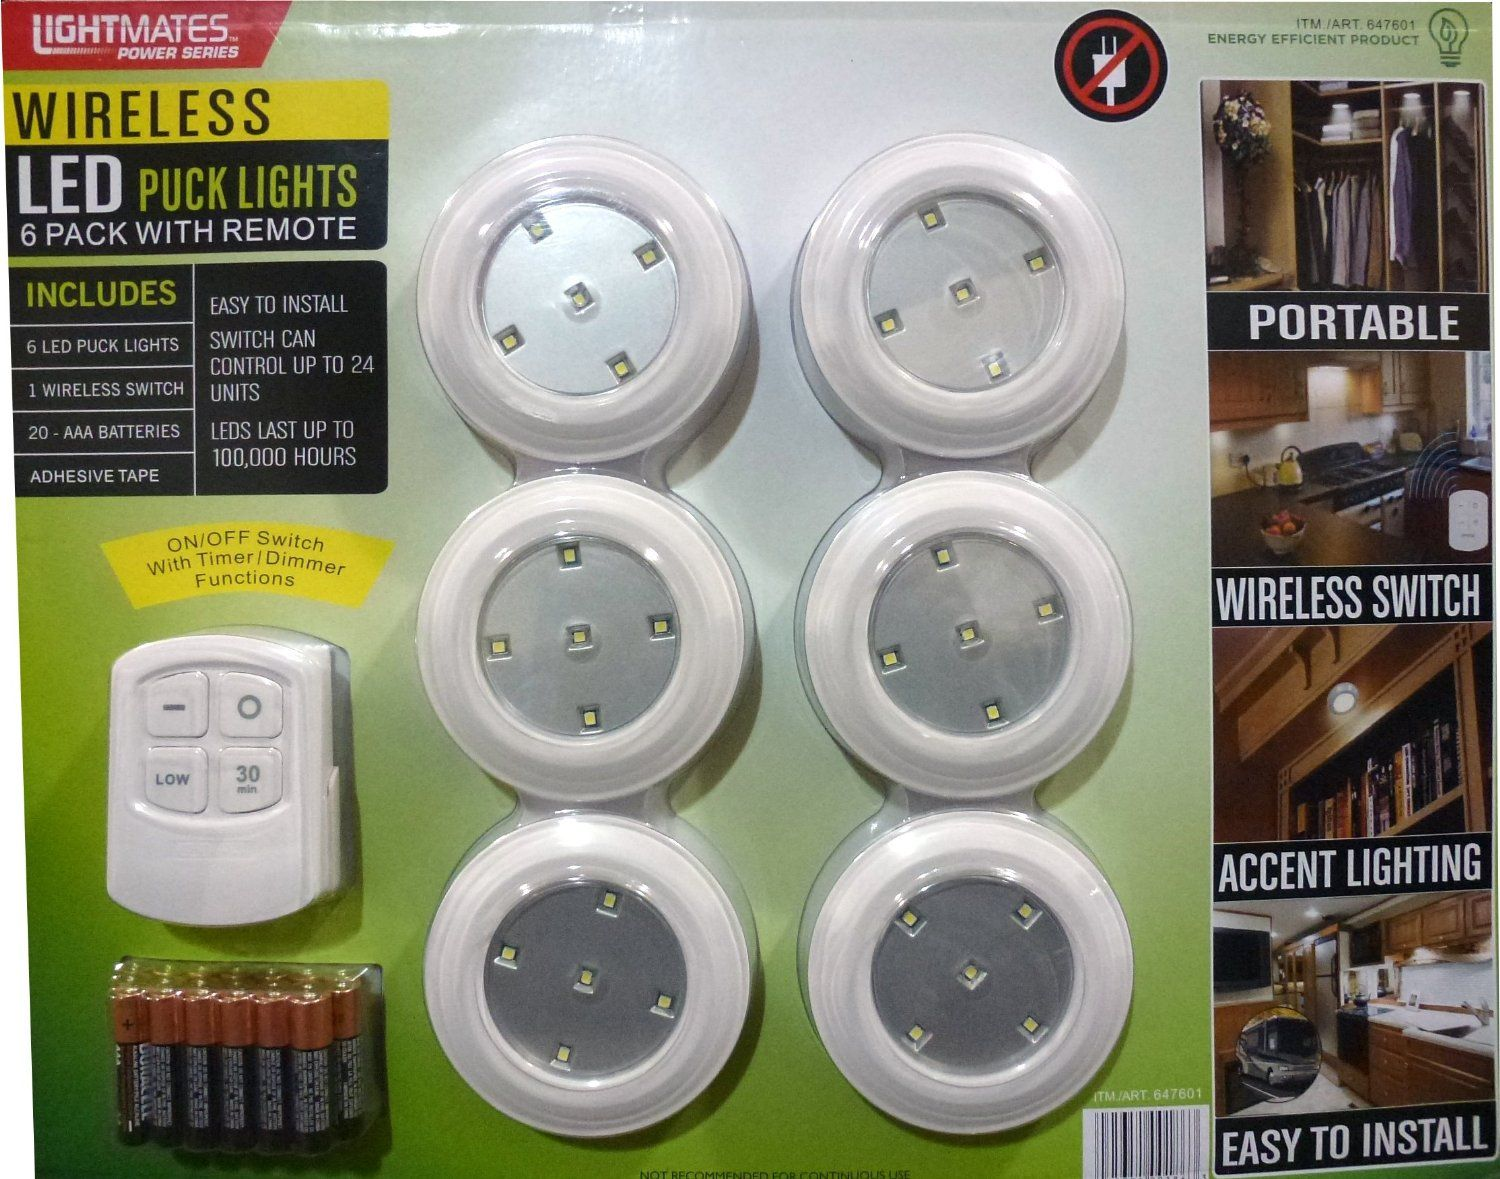 Lightmates led wireless puck lights with remote batteries 6 lightmates led wireless puck lights with remote batteries 6 pack product aloadofball Choice Image